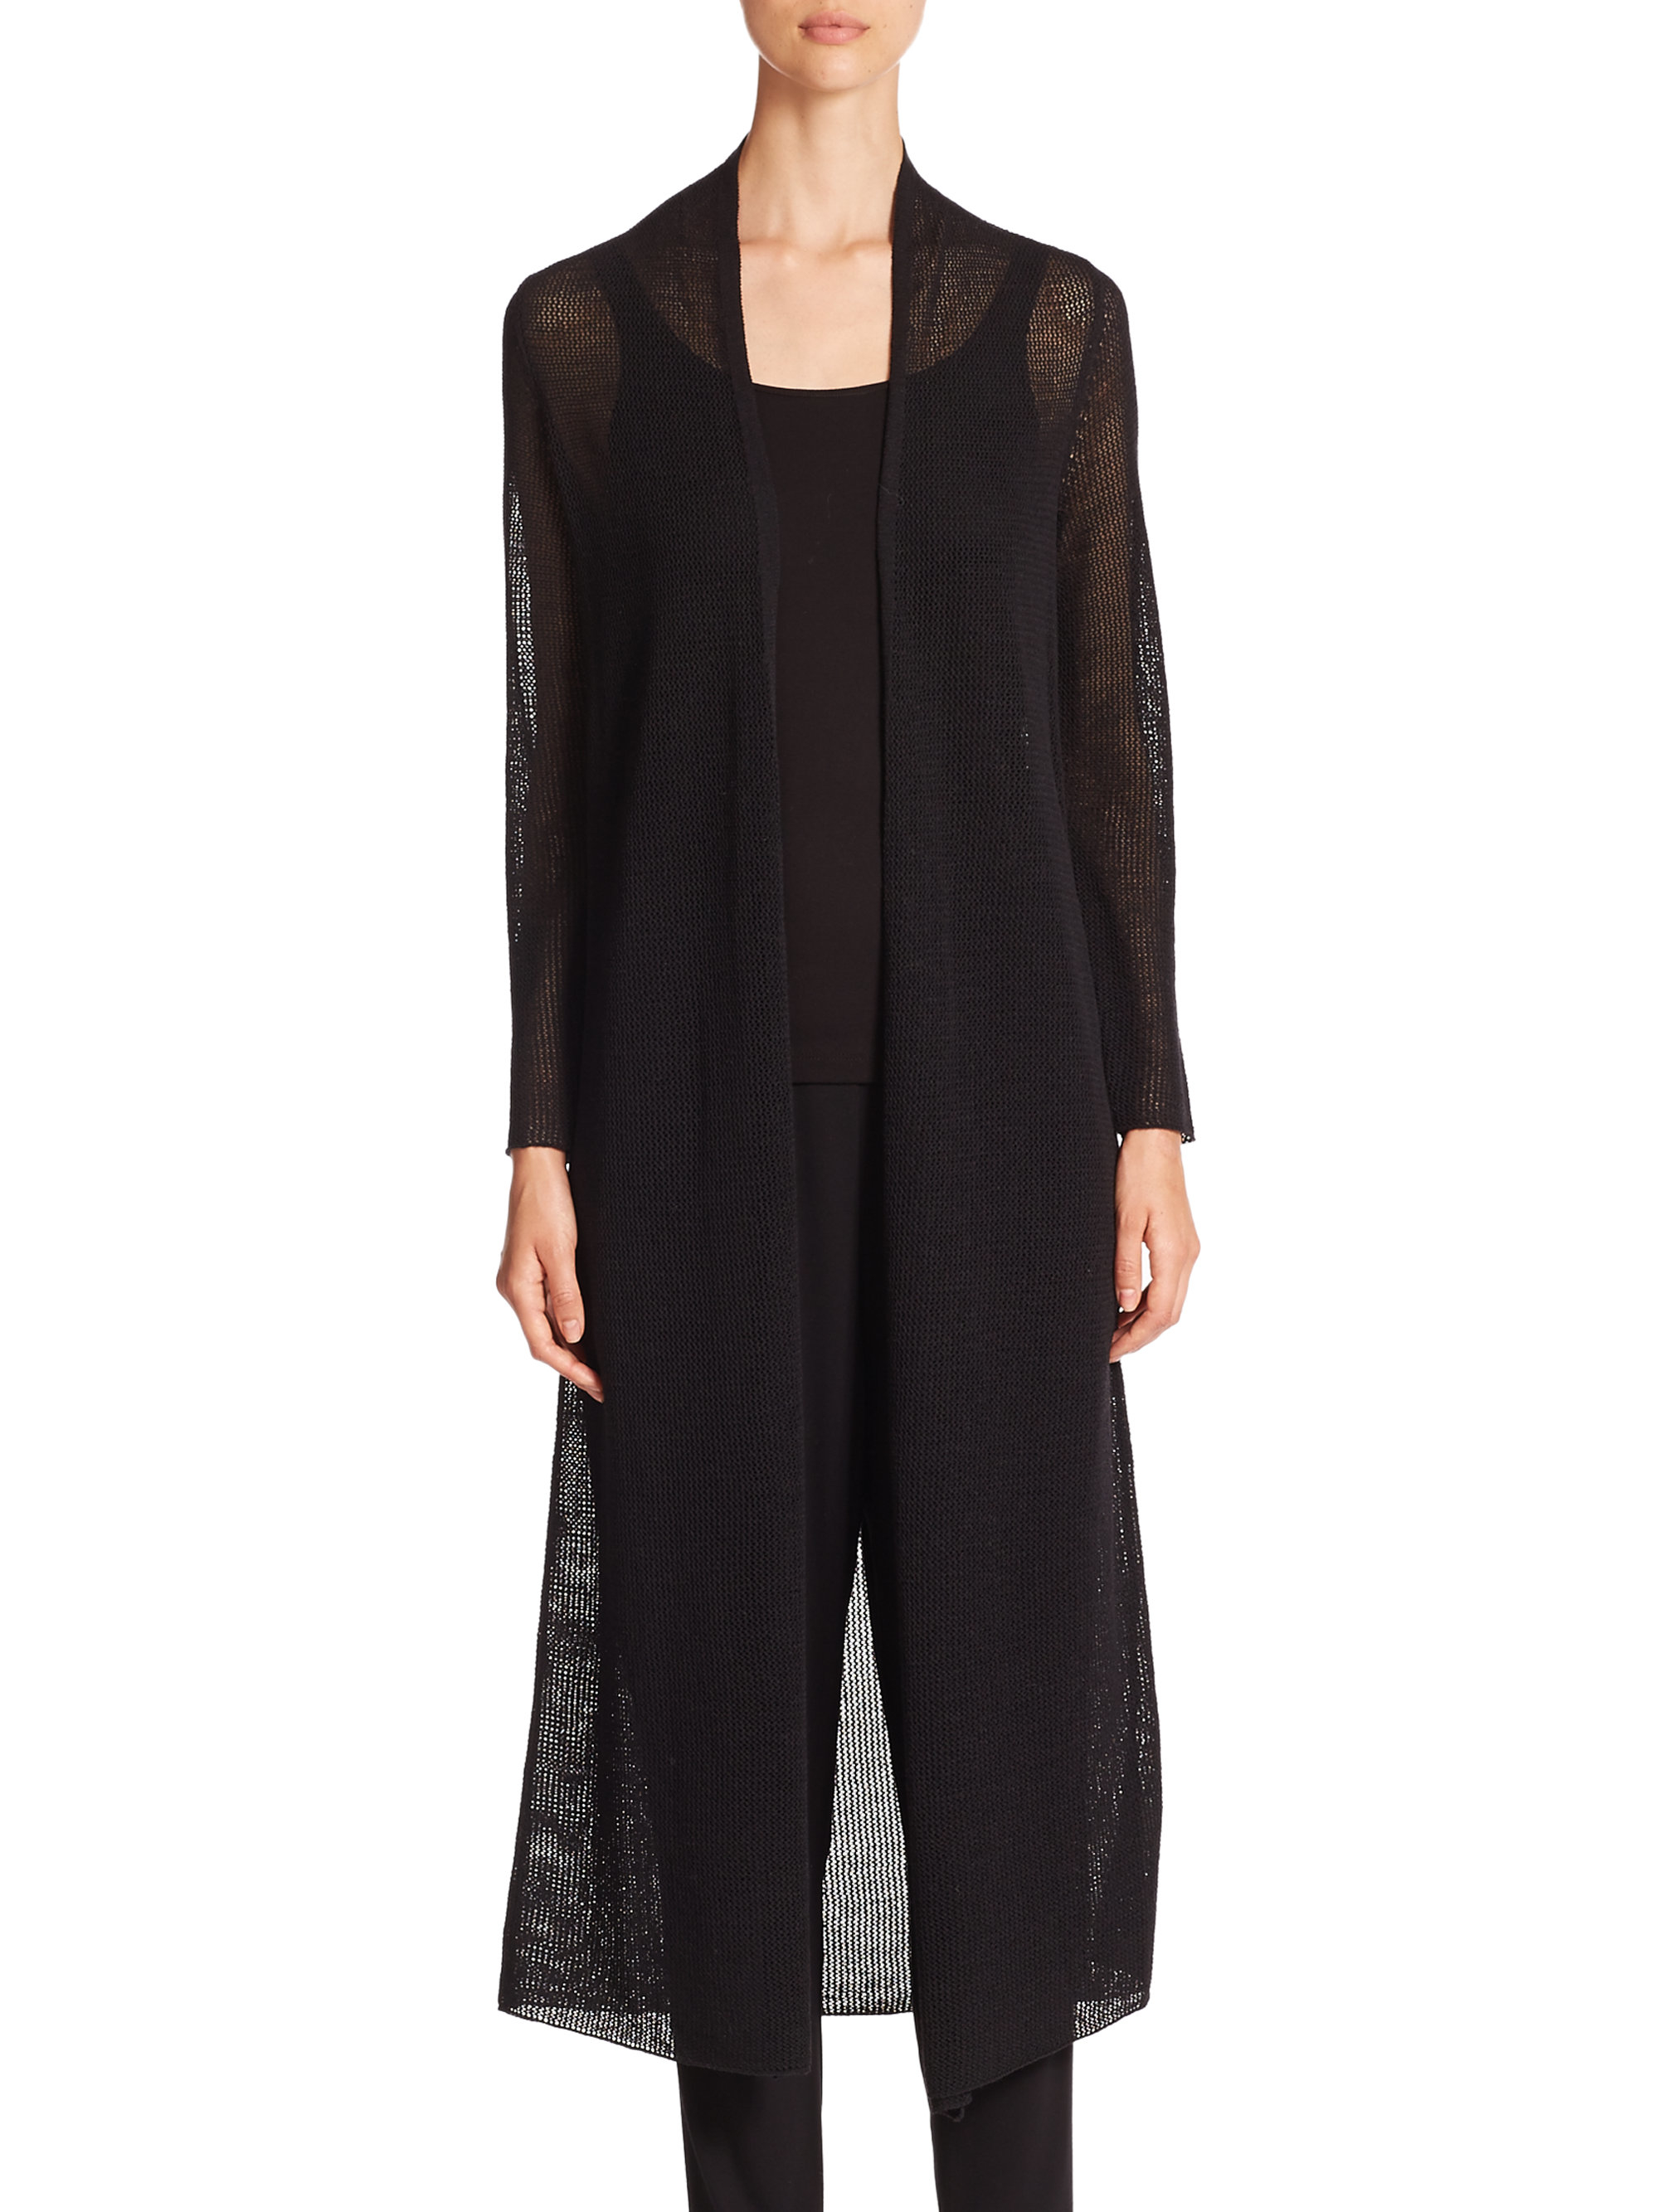 Eileen fisher Long Open-stitch Wool Cardigan in Black | Lyst